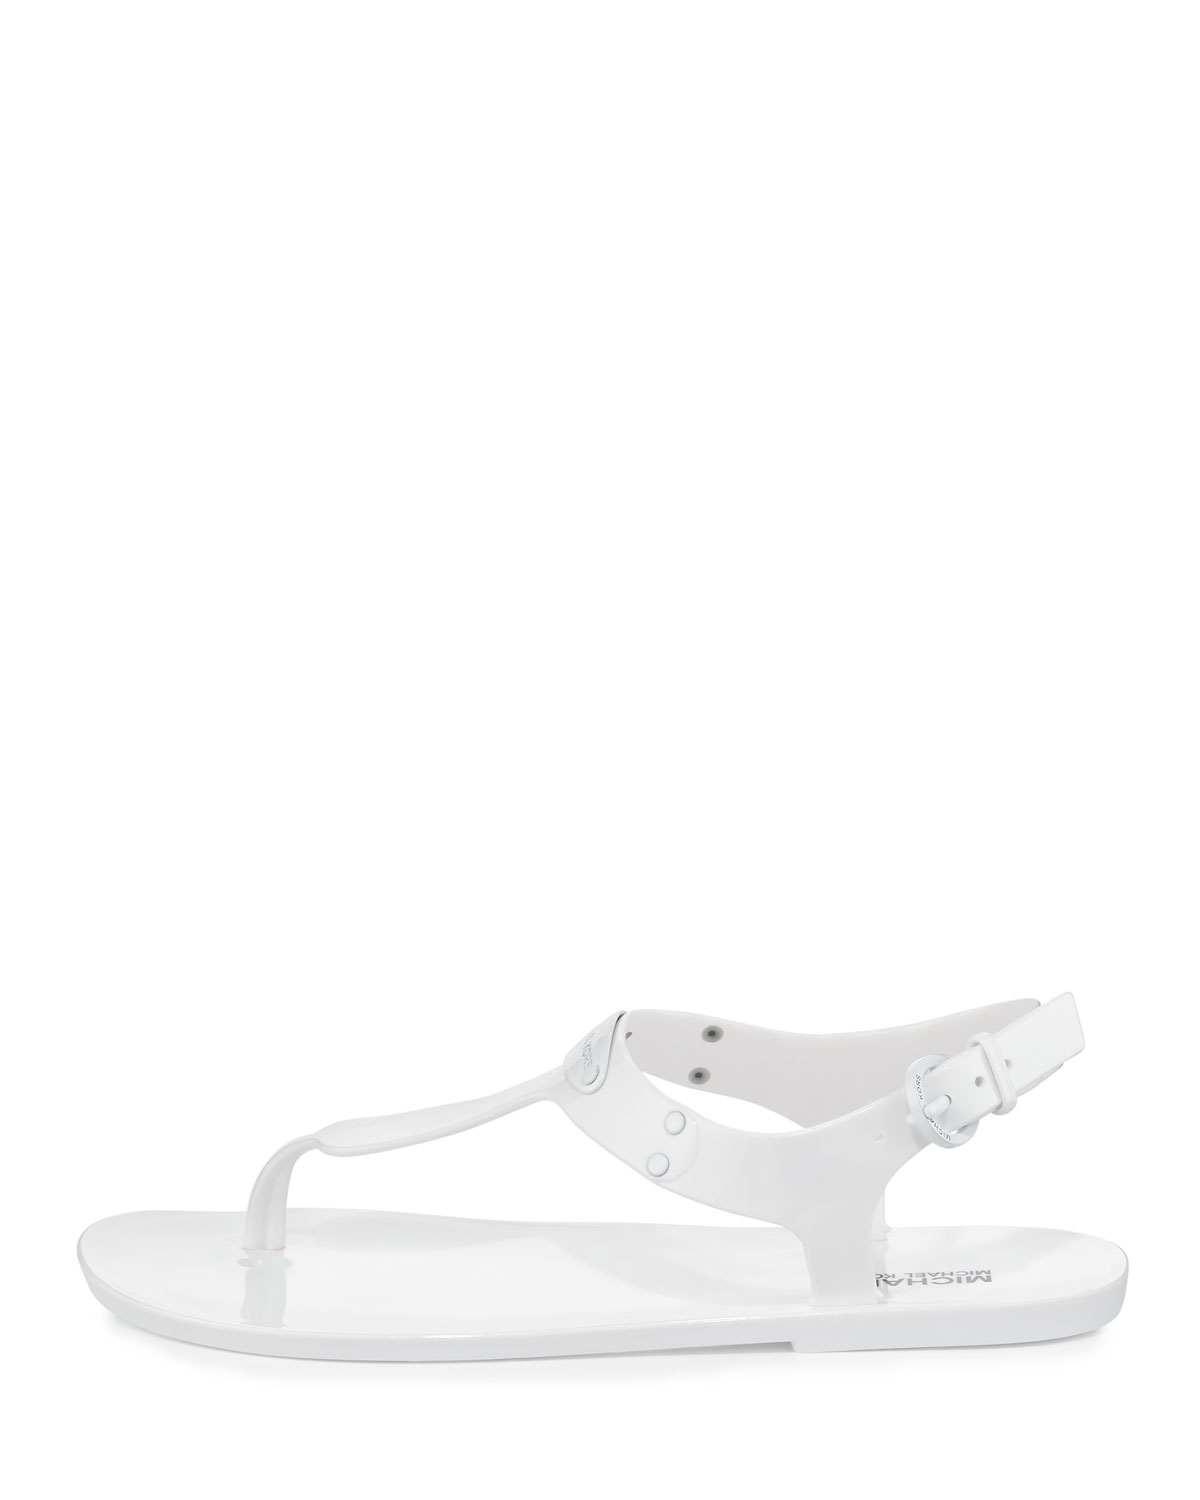 96c0b331a89 Michael Kors Plate Jelly Womens Flat Sandals optic white 6 US   4 UK ...